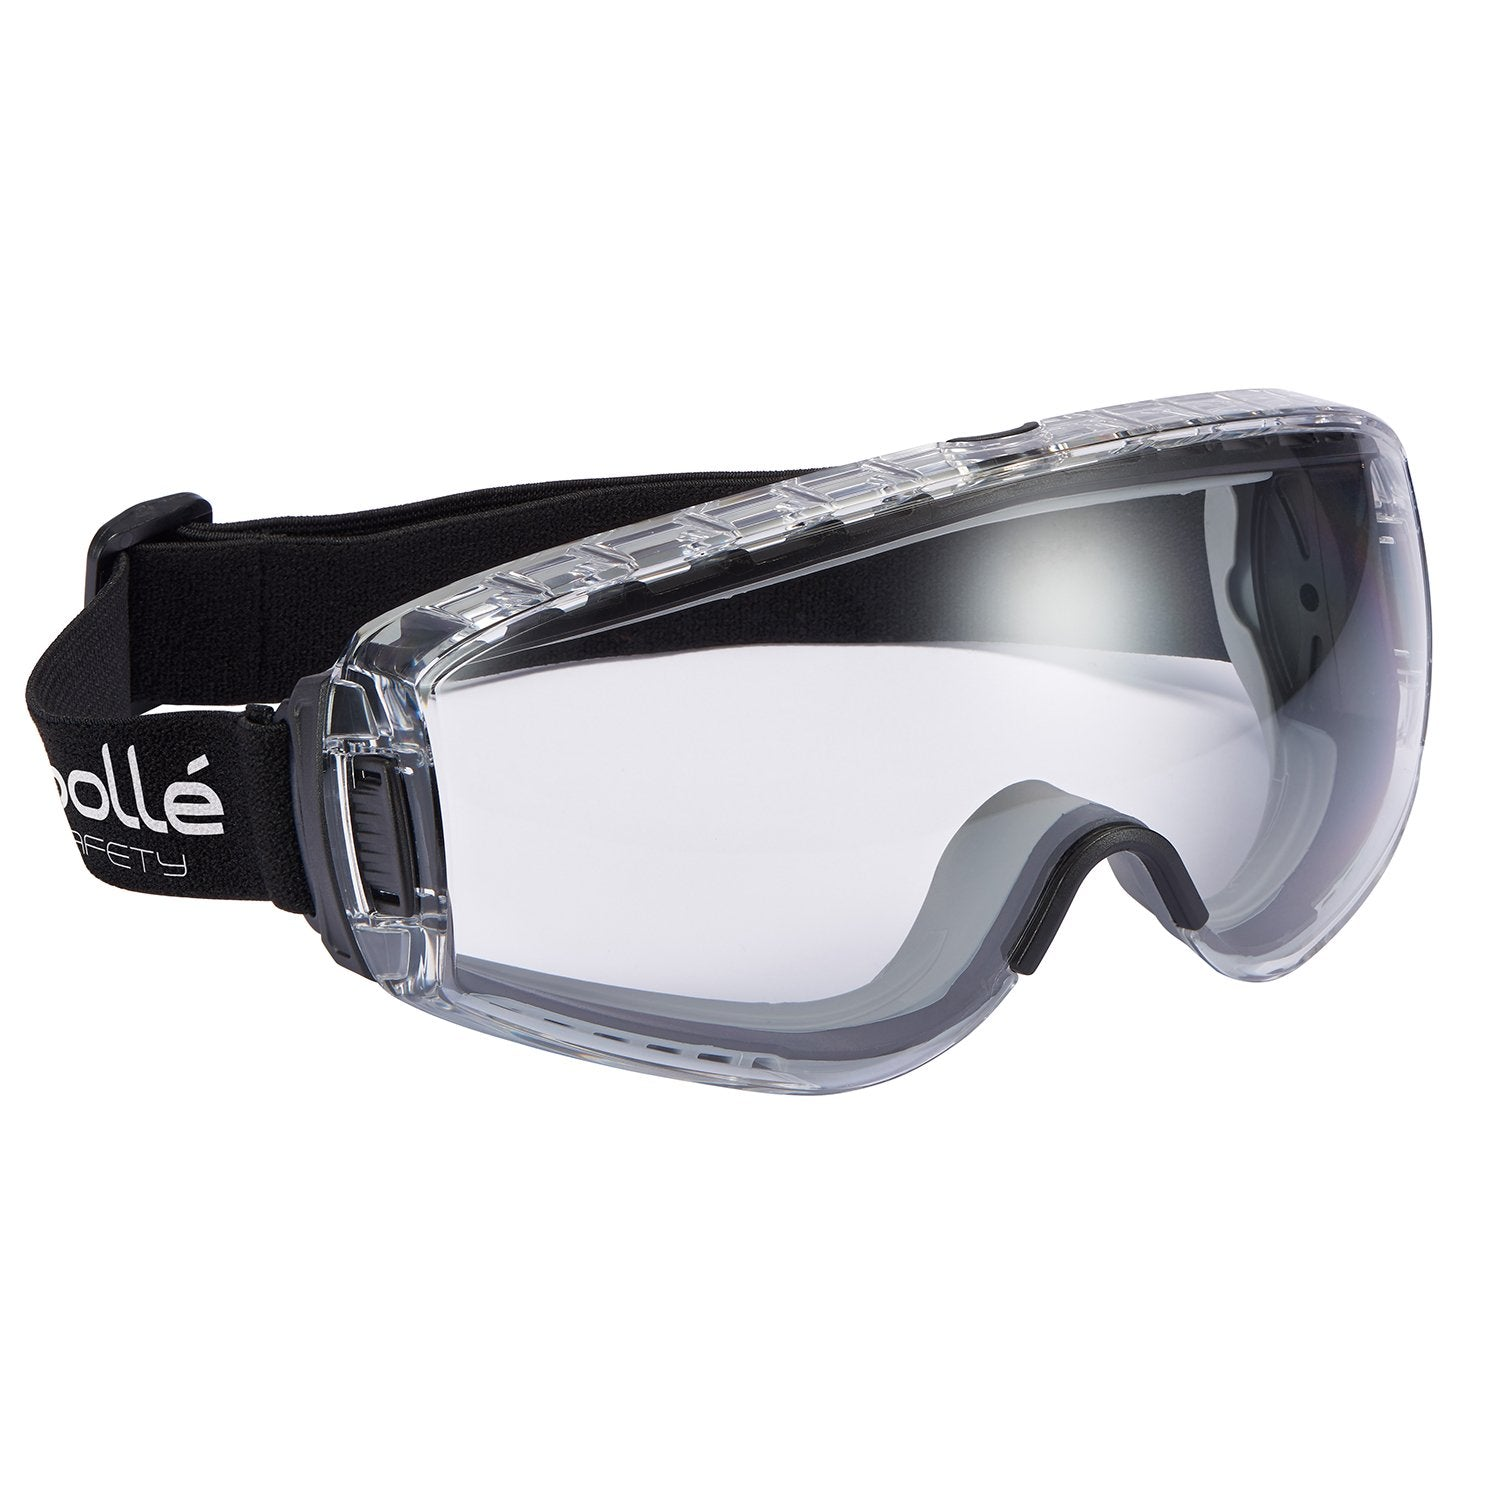 Bolle B808 Prescription Safety Spectacles Glasses Clear Lens 2,5 or 10 Pairs